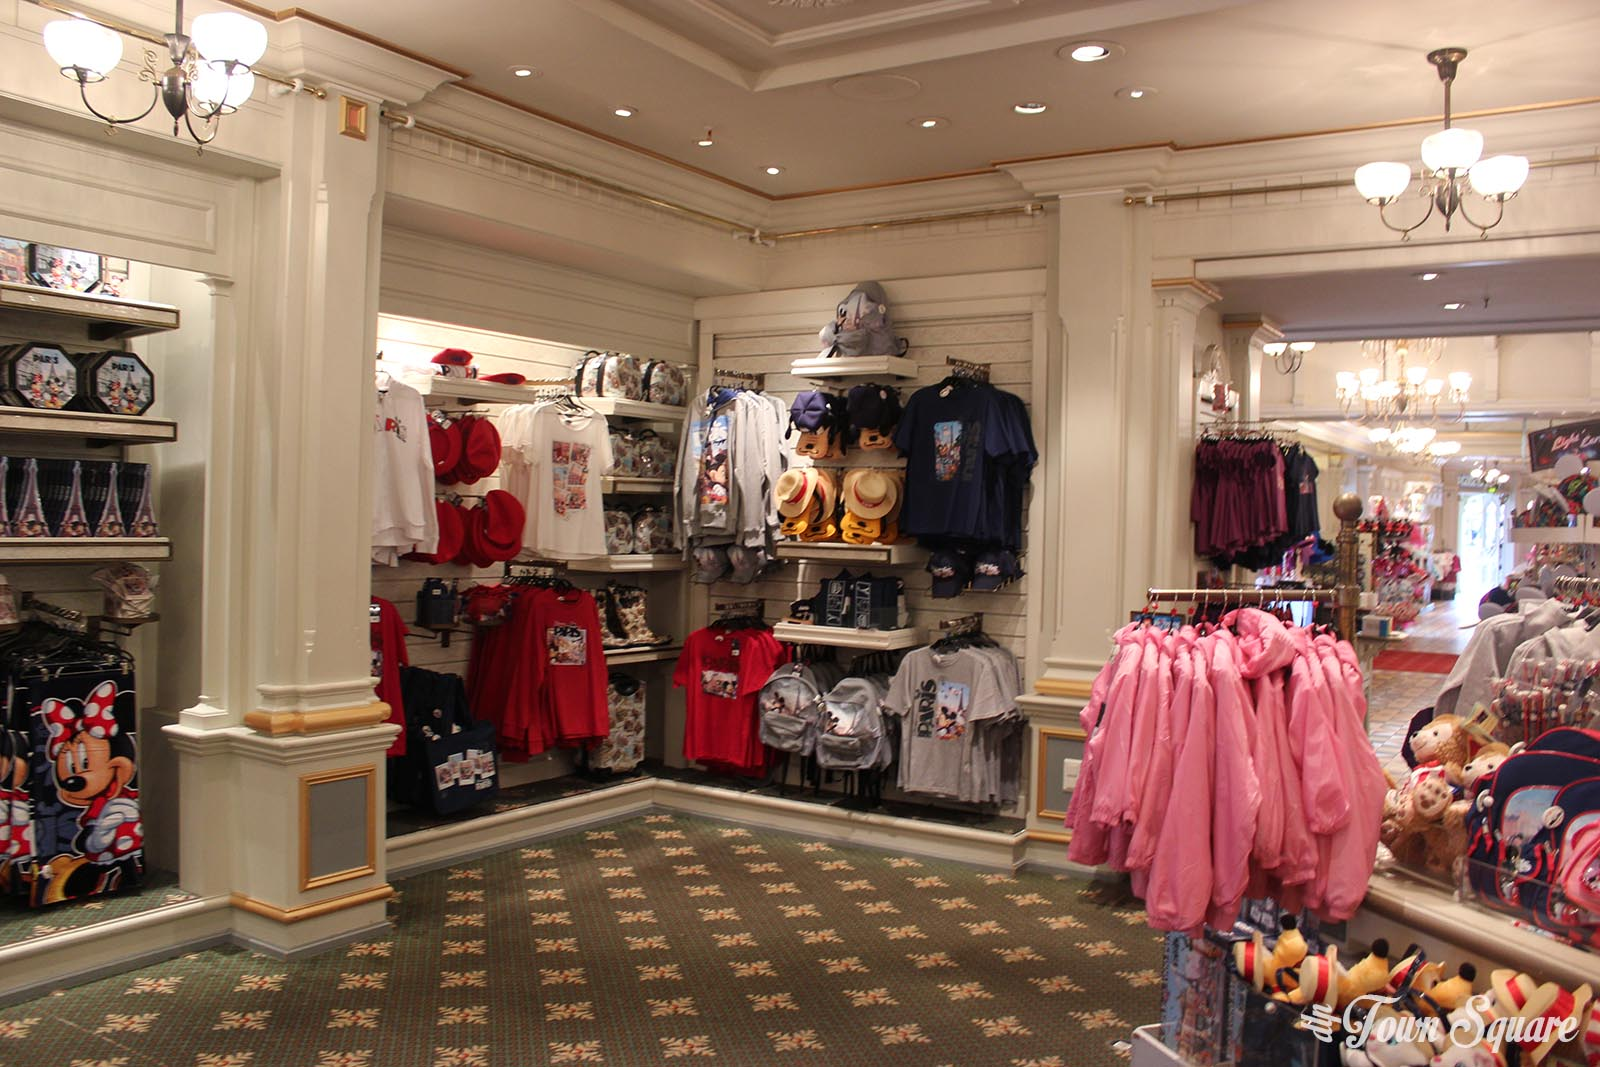 The Emporium shop at Disneyland Paris